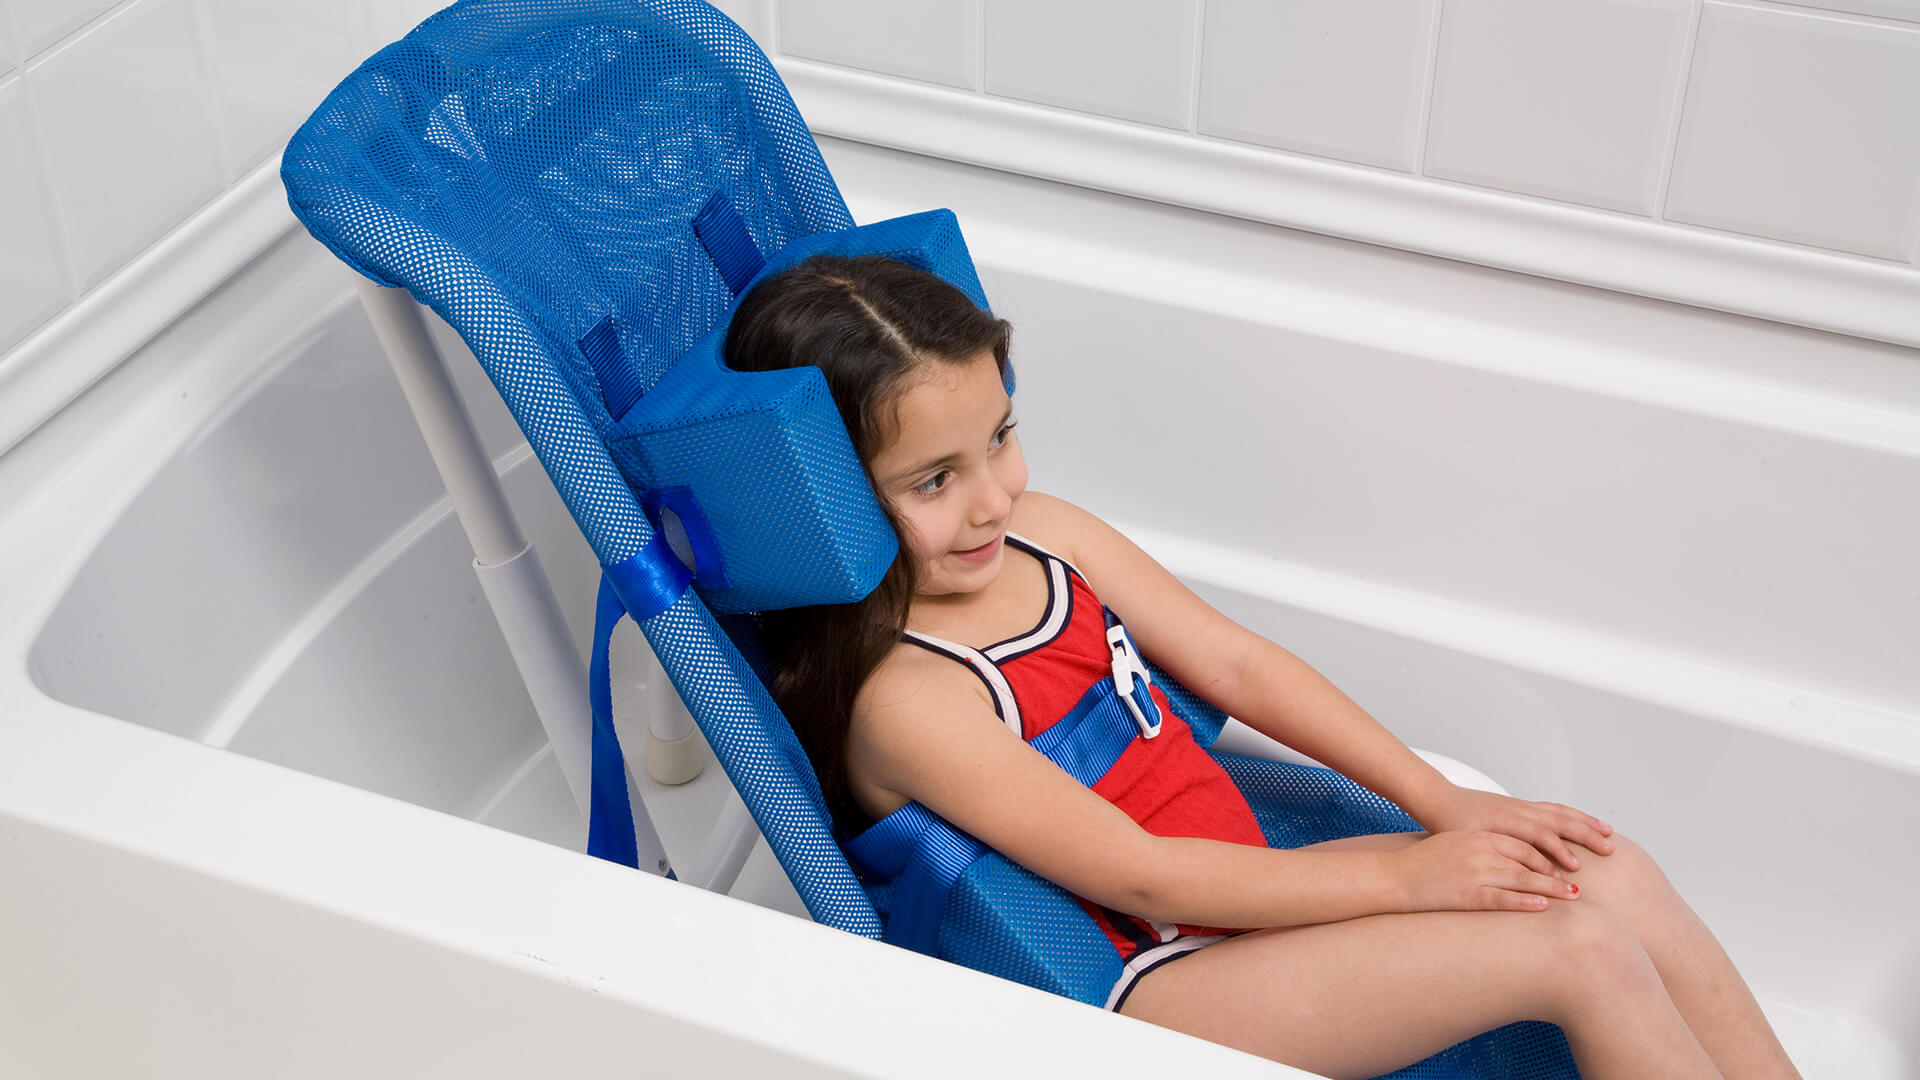 Contour™ Deluxe Bath Chair Inspired by Drive